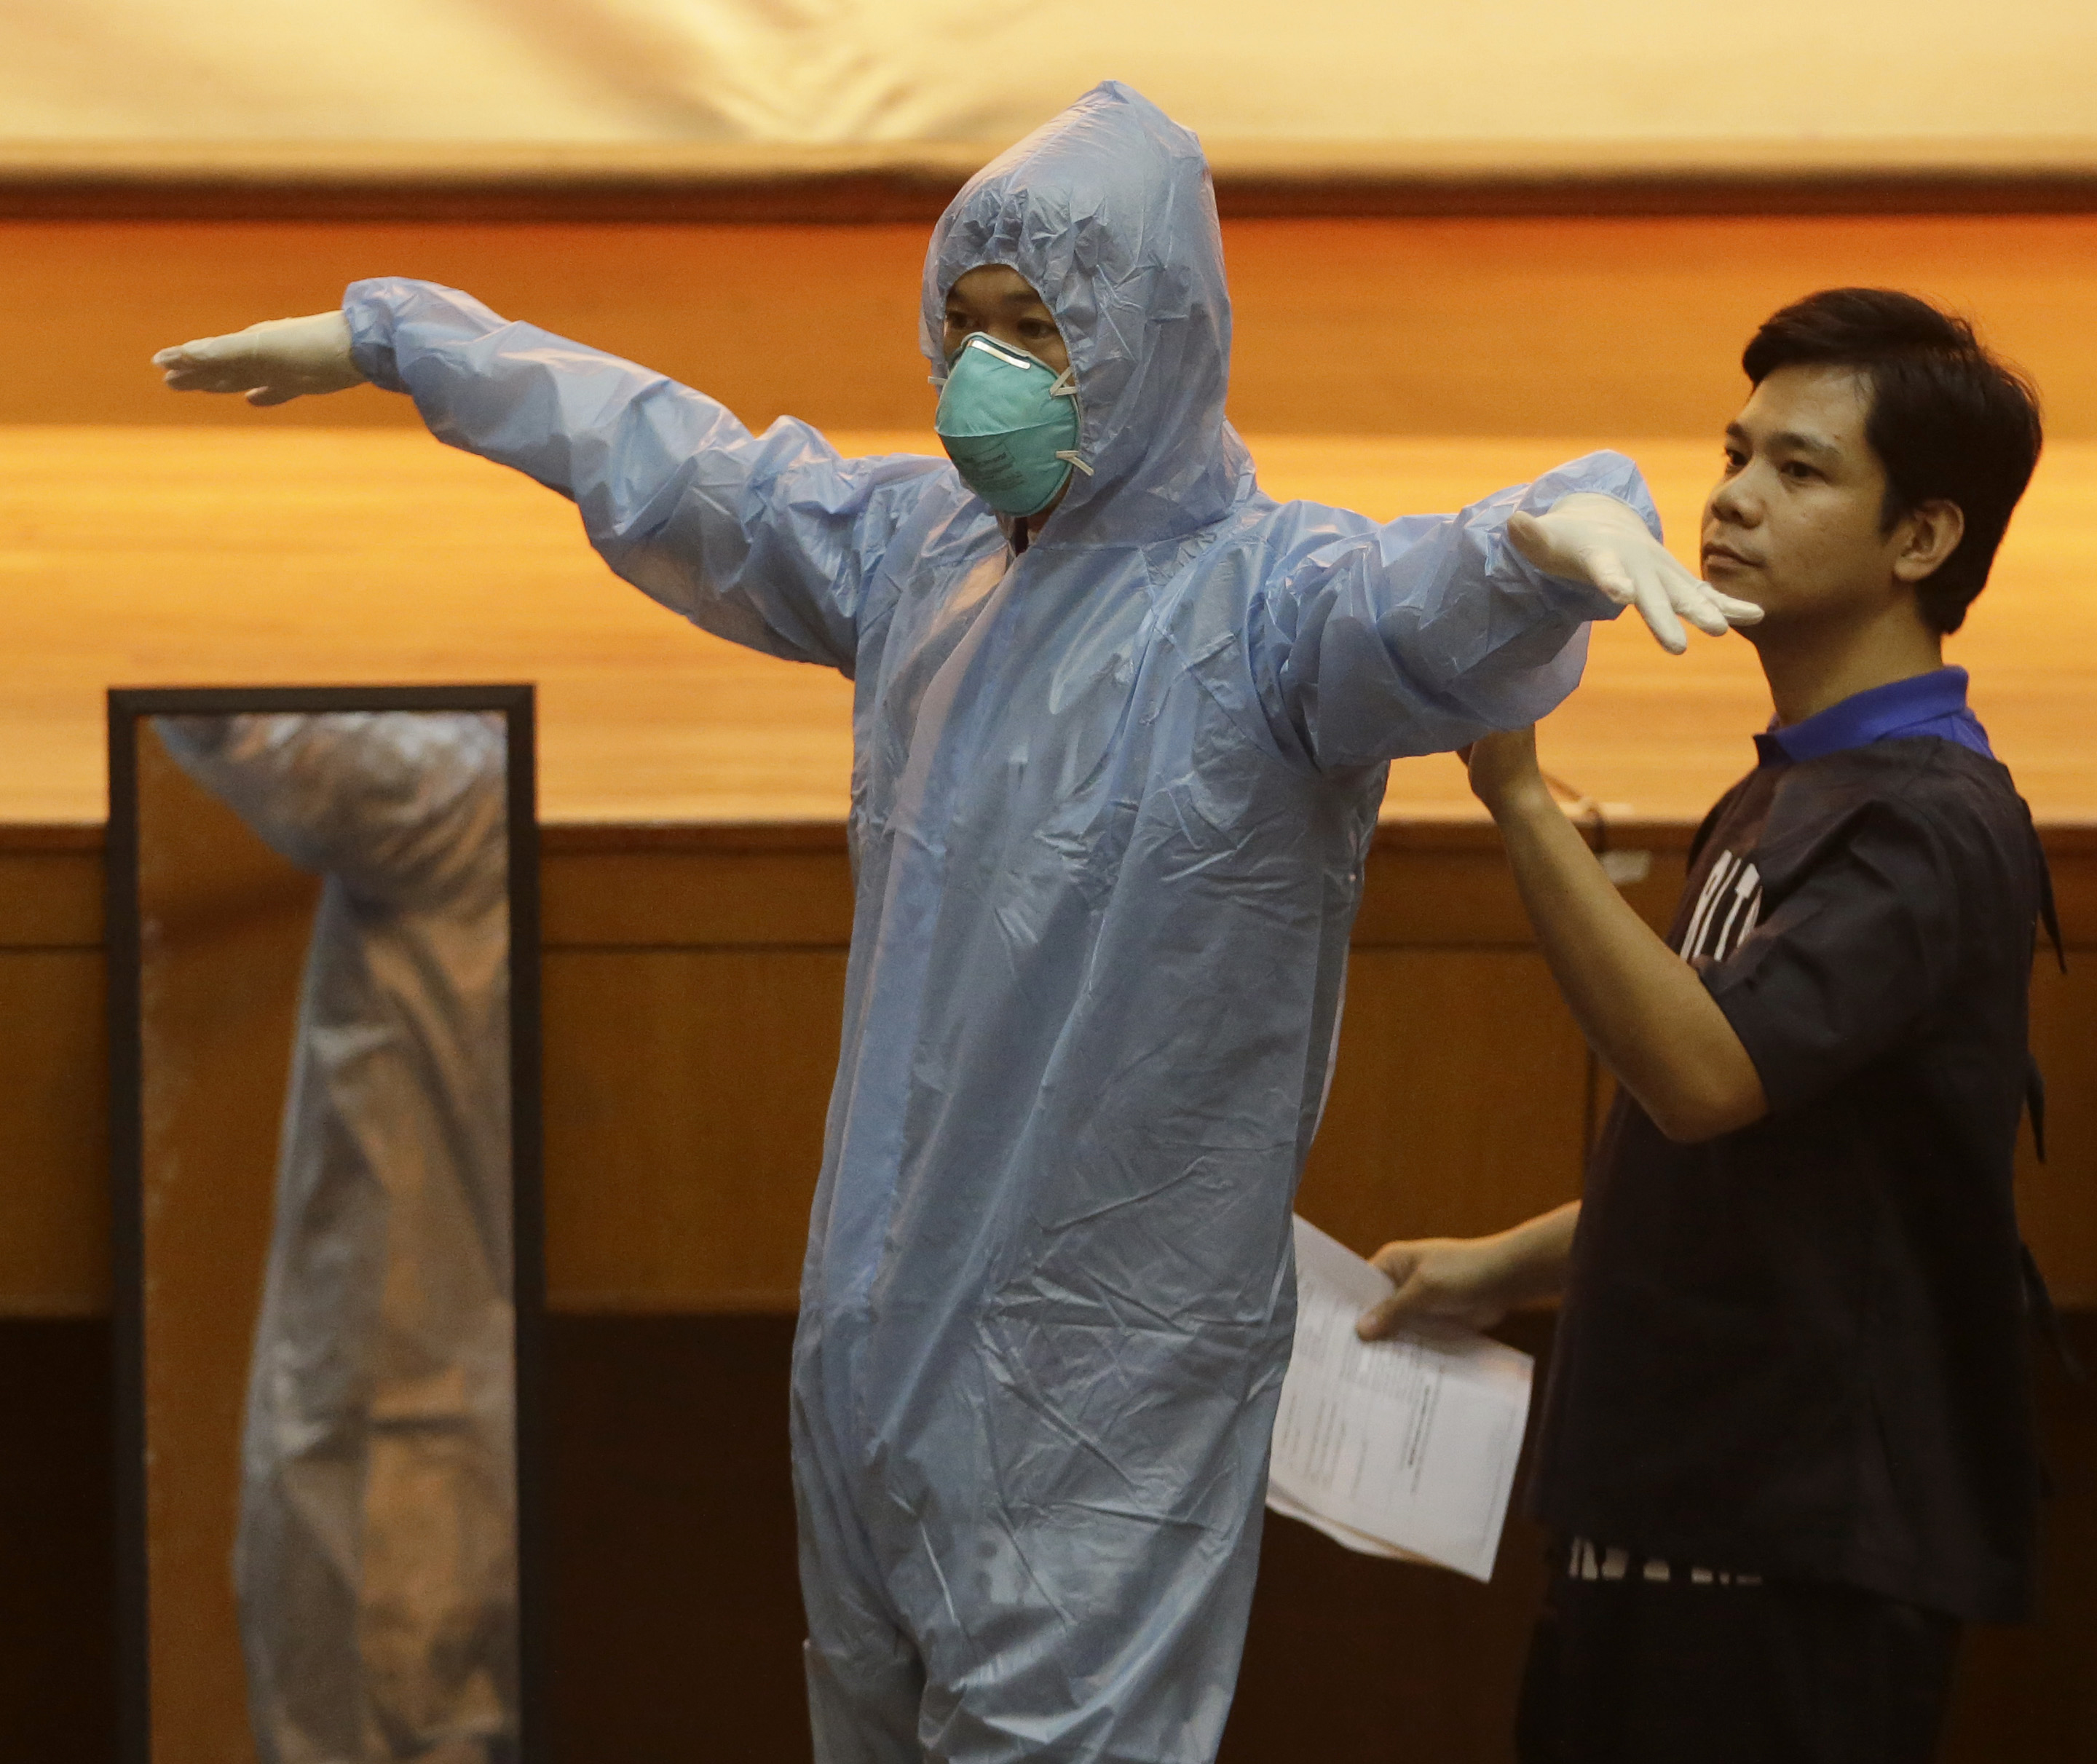 Government health workers practice wearing Ebola protective suits on the first day of training on hospital management for Ebola virus at the Research Institute for Tropical Medicine in the Philippine city of Muntinlupa on Oct. 28, 2014